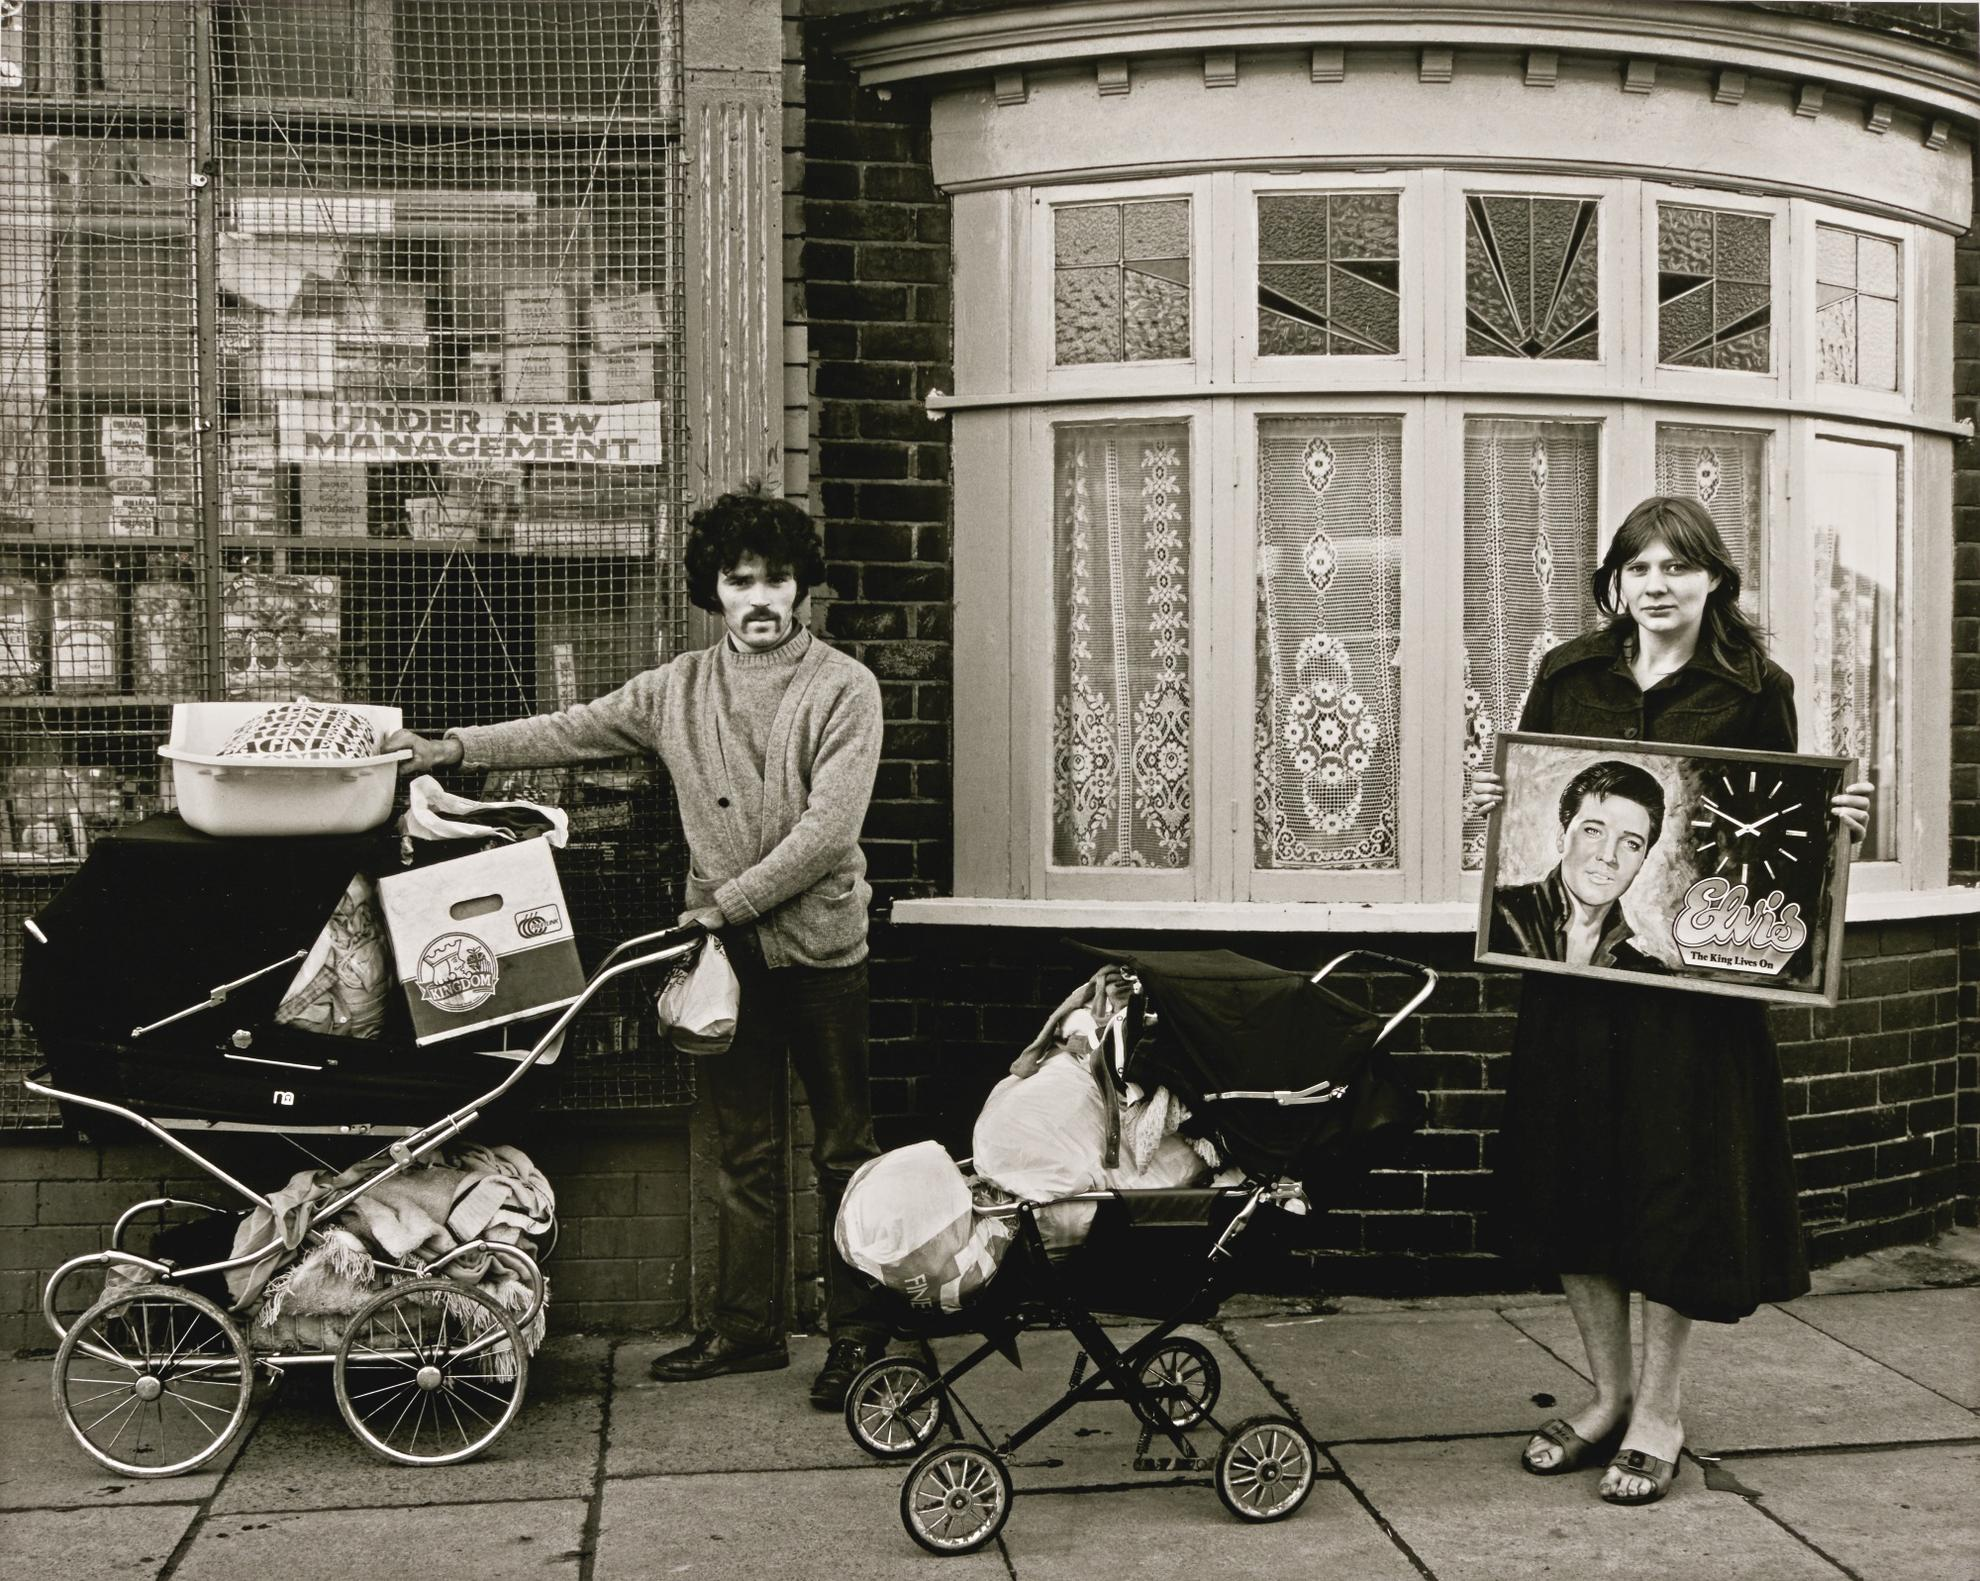 Graham Smith - Who She Wanted And What She Got, South Bank, Middlesbrough-1982